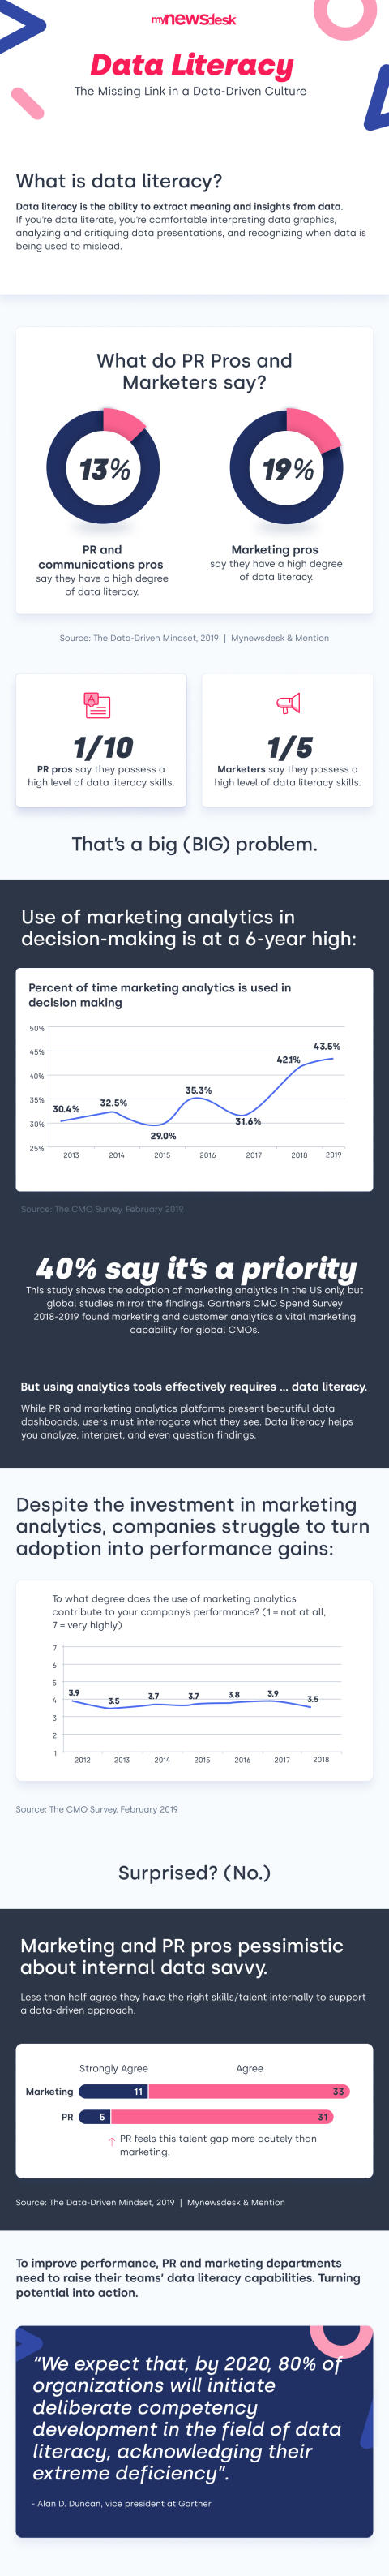 NEW! Infographic: Data Driven Mindset